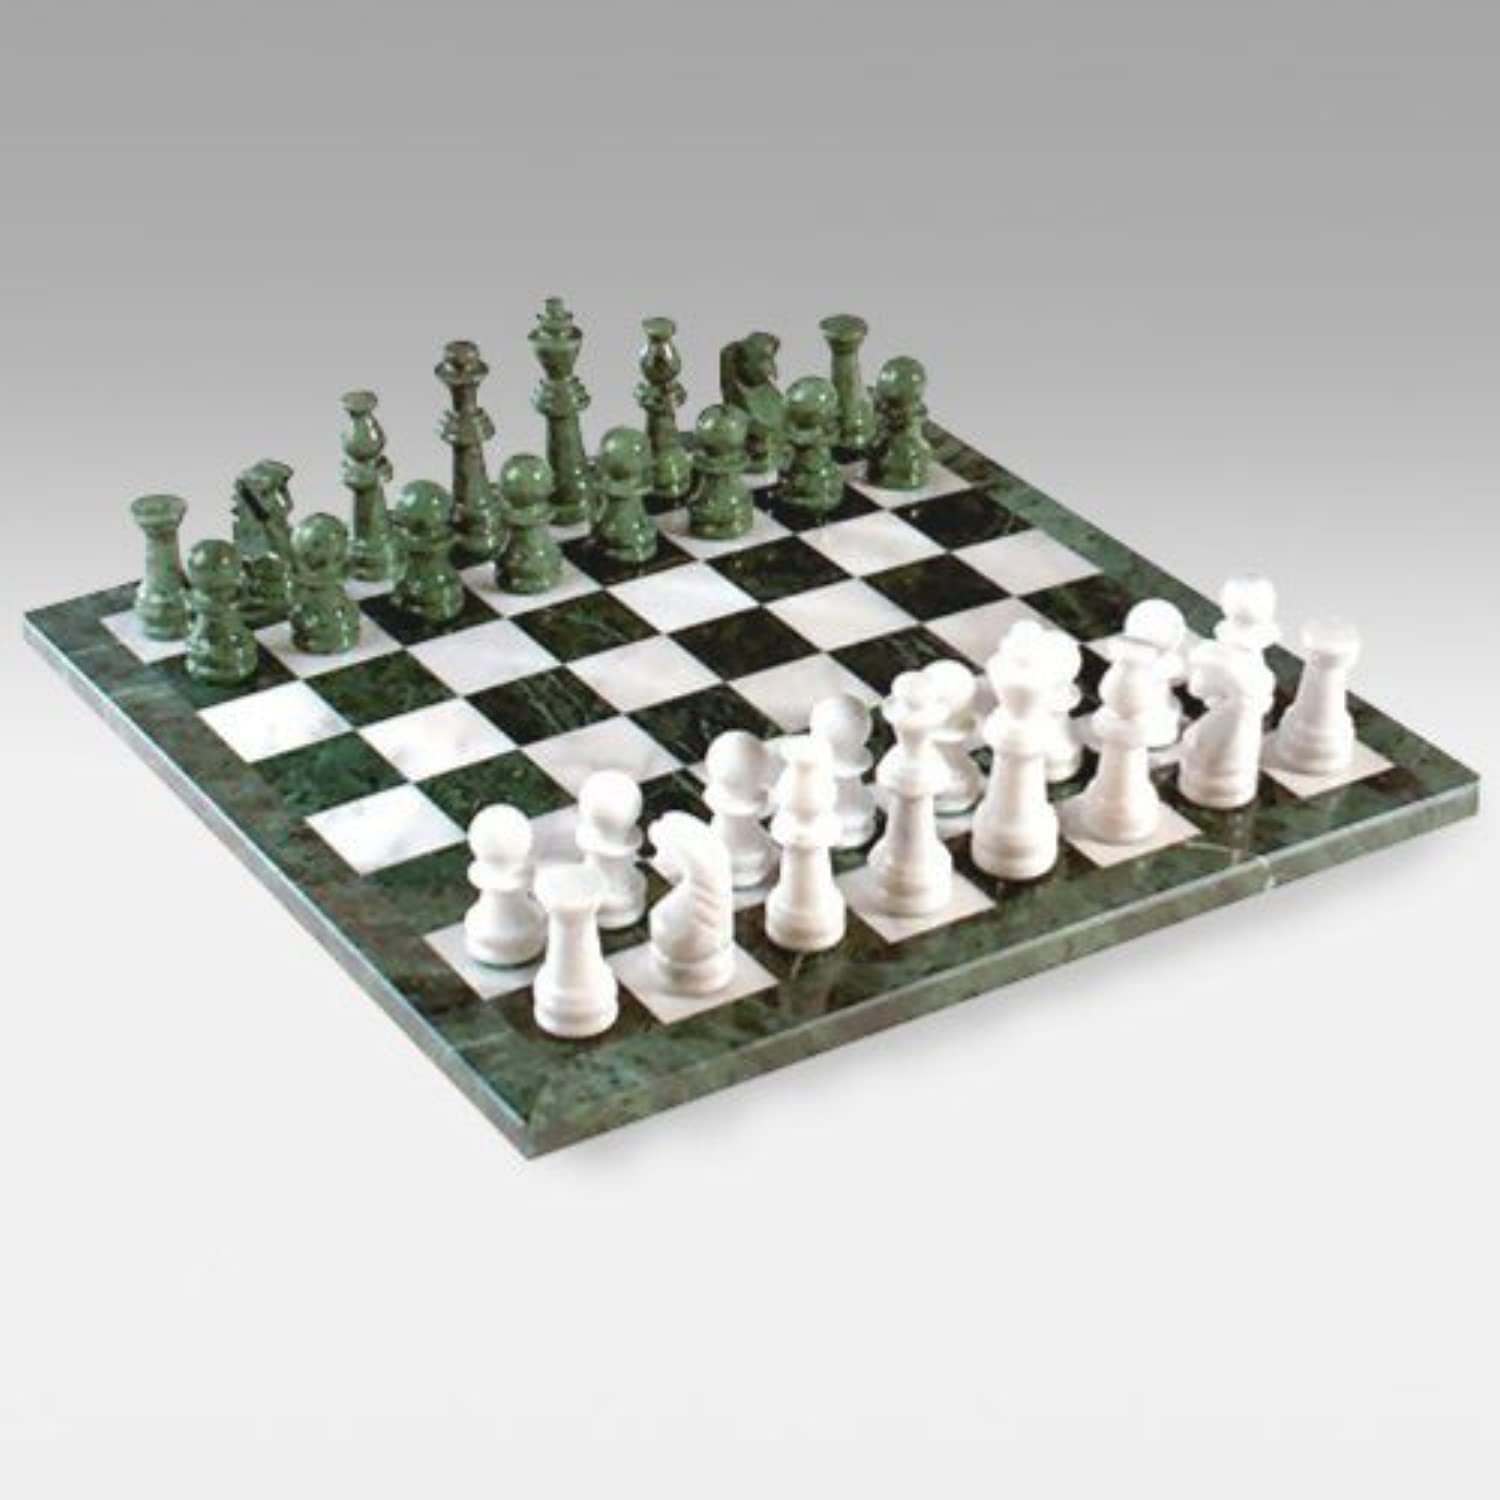 Lustrous Marble Chess Set - 4.5 in. King